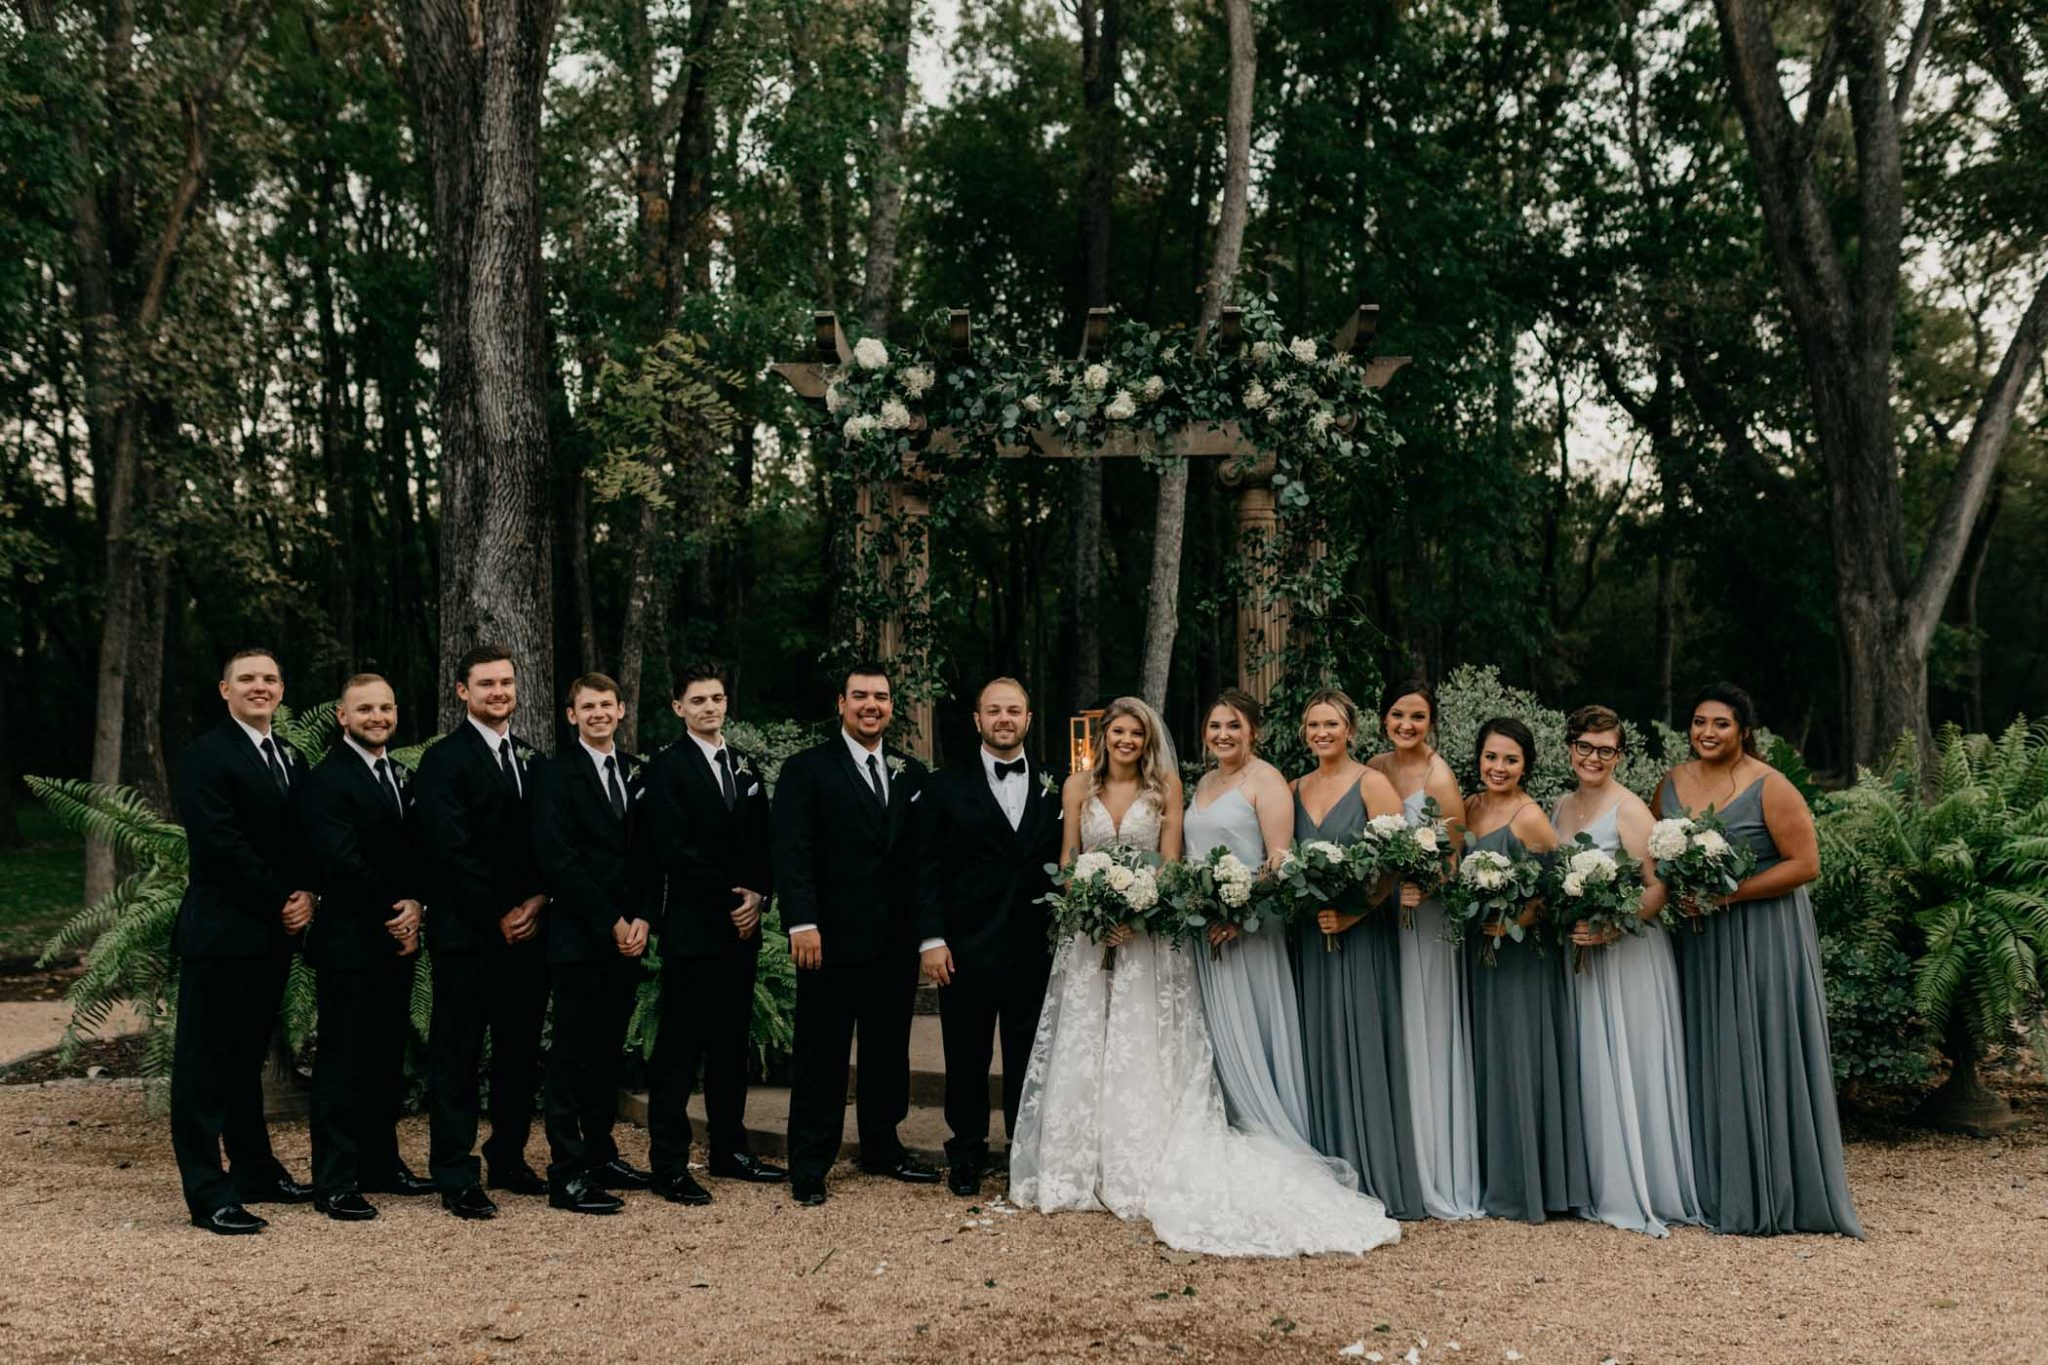 huge bridal party photo - bridesmaids wearing different shades of blue